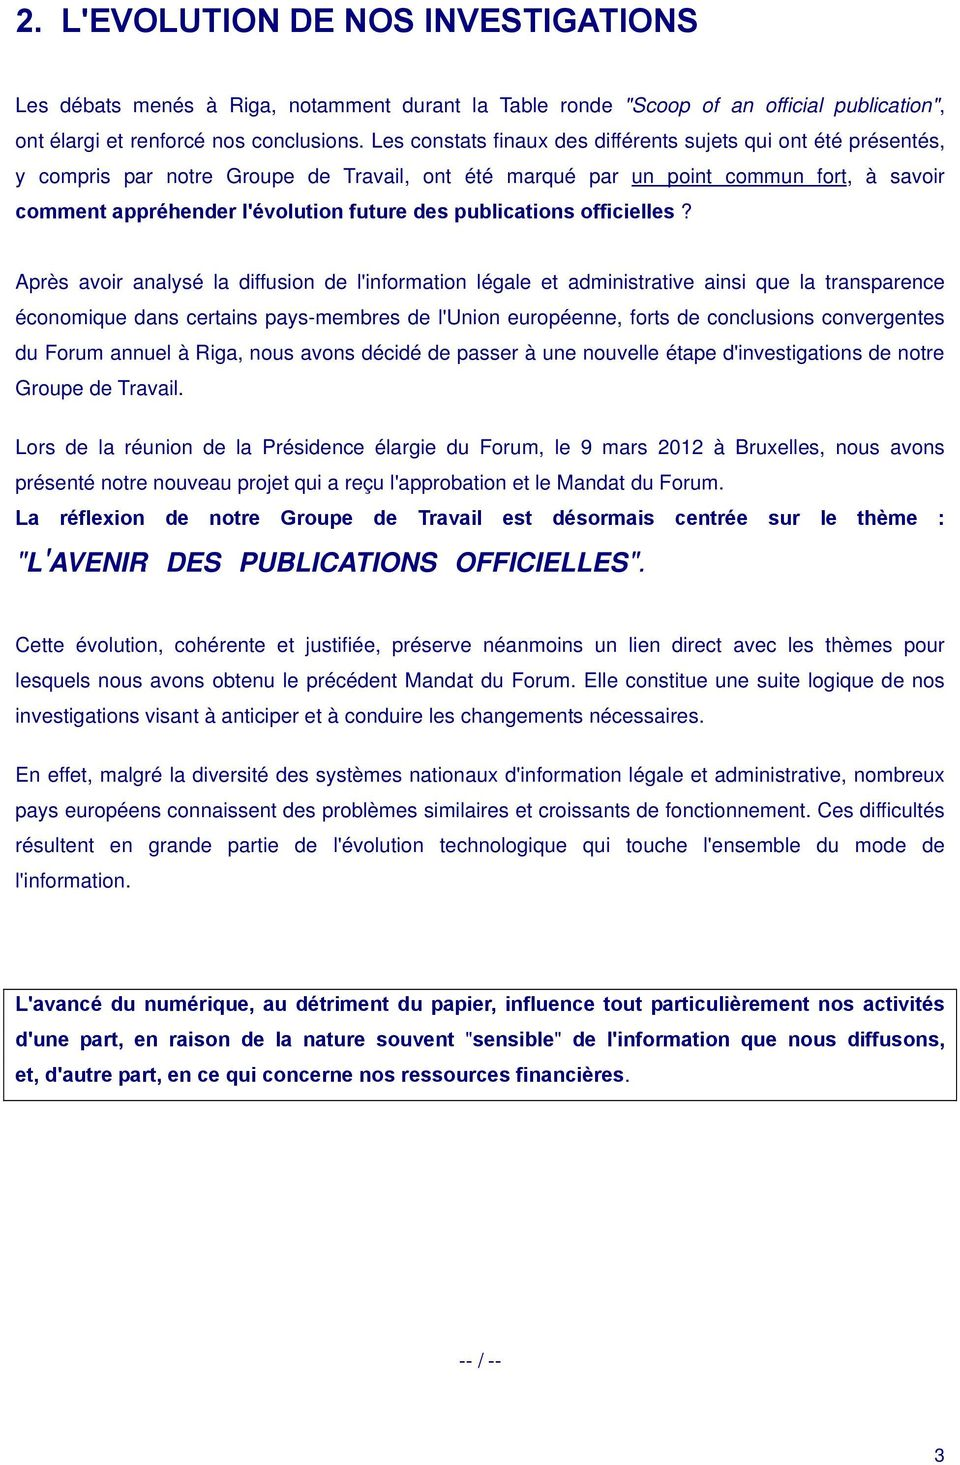 publications officielles?